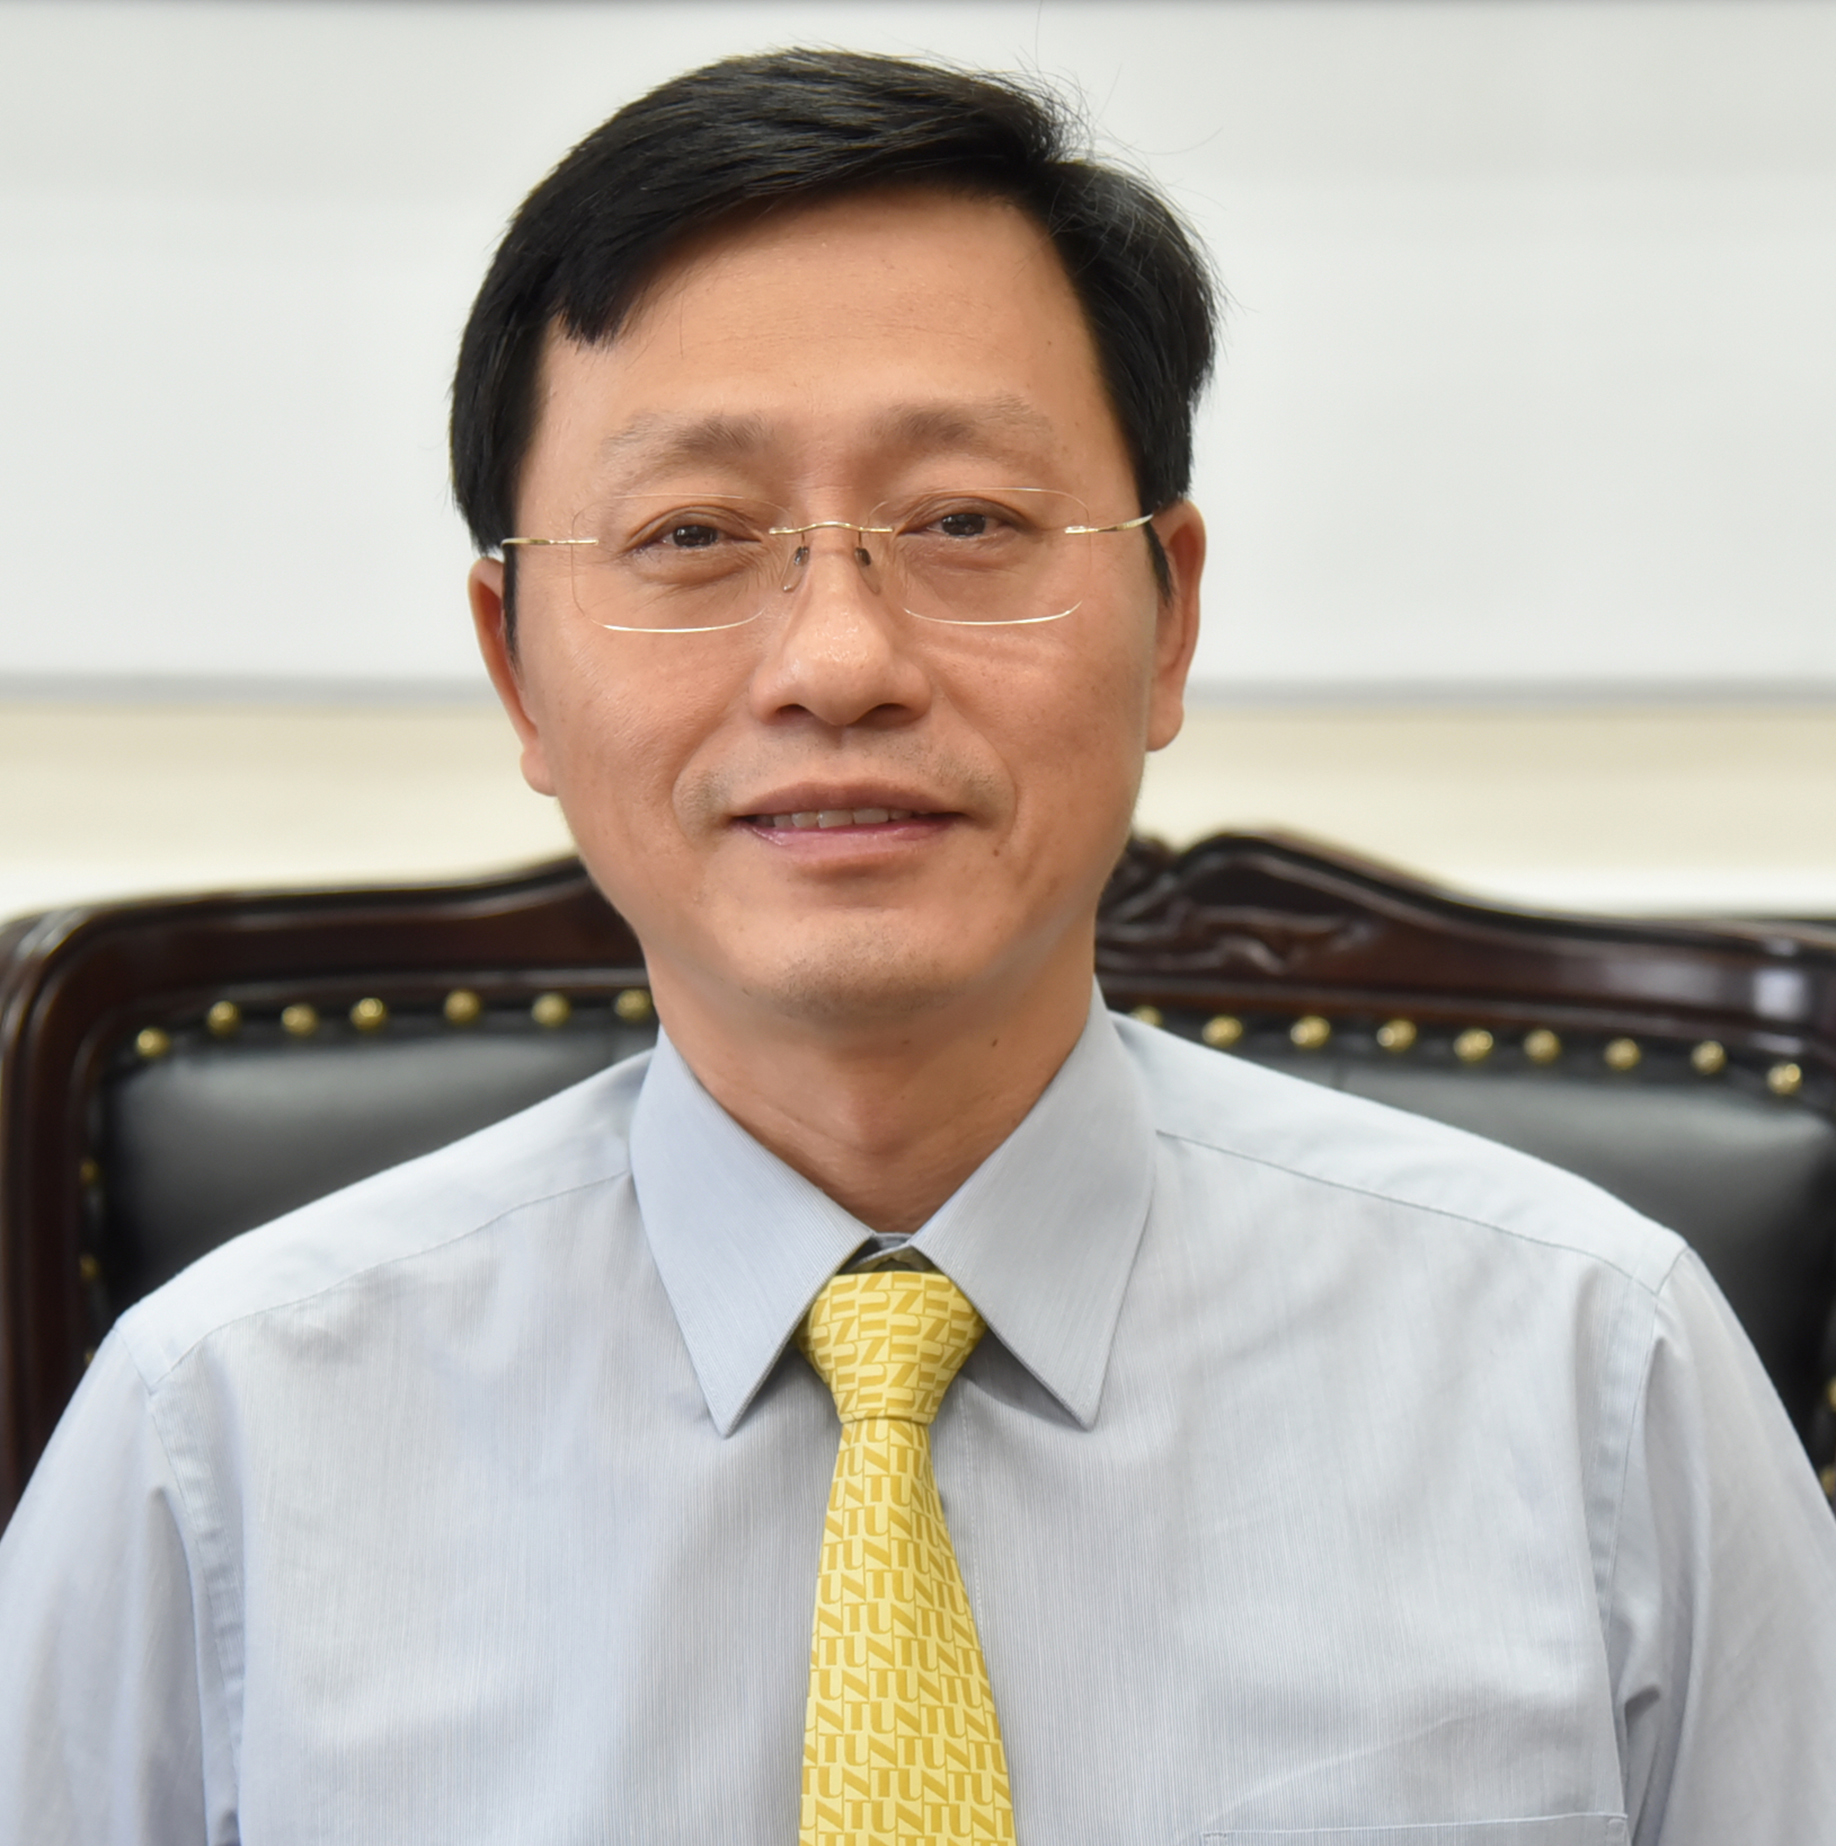 Dr. Tei-Wei Kuo